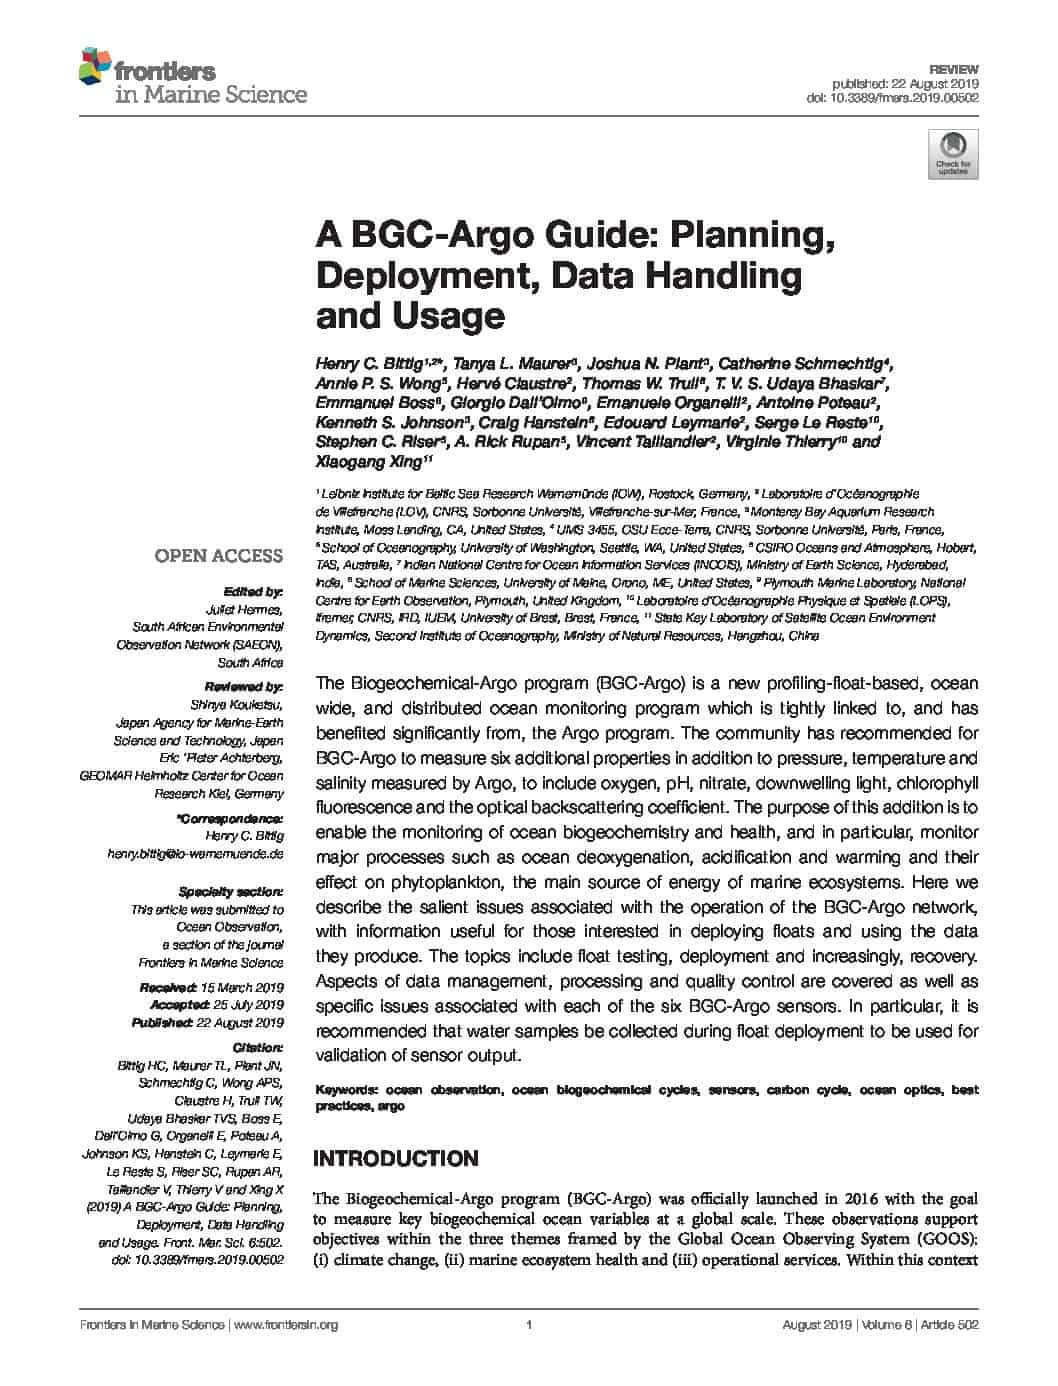 A BGC-Argo Guide: Planning, Deployment, Data Handling and Usage